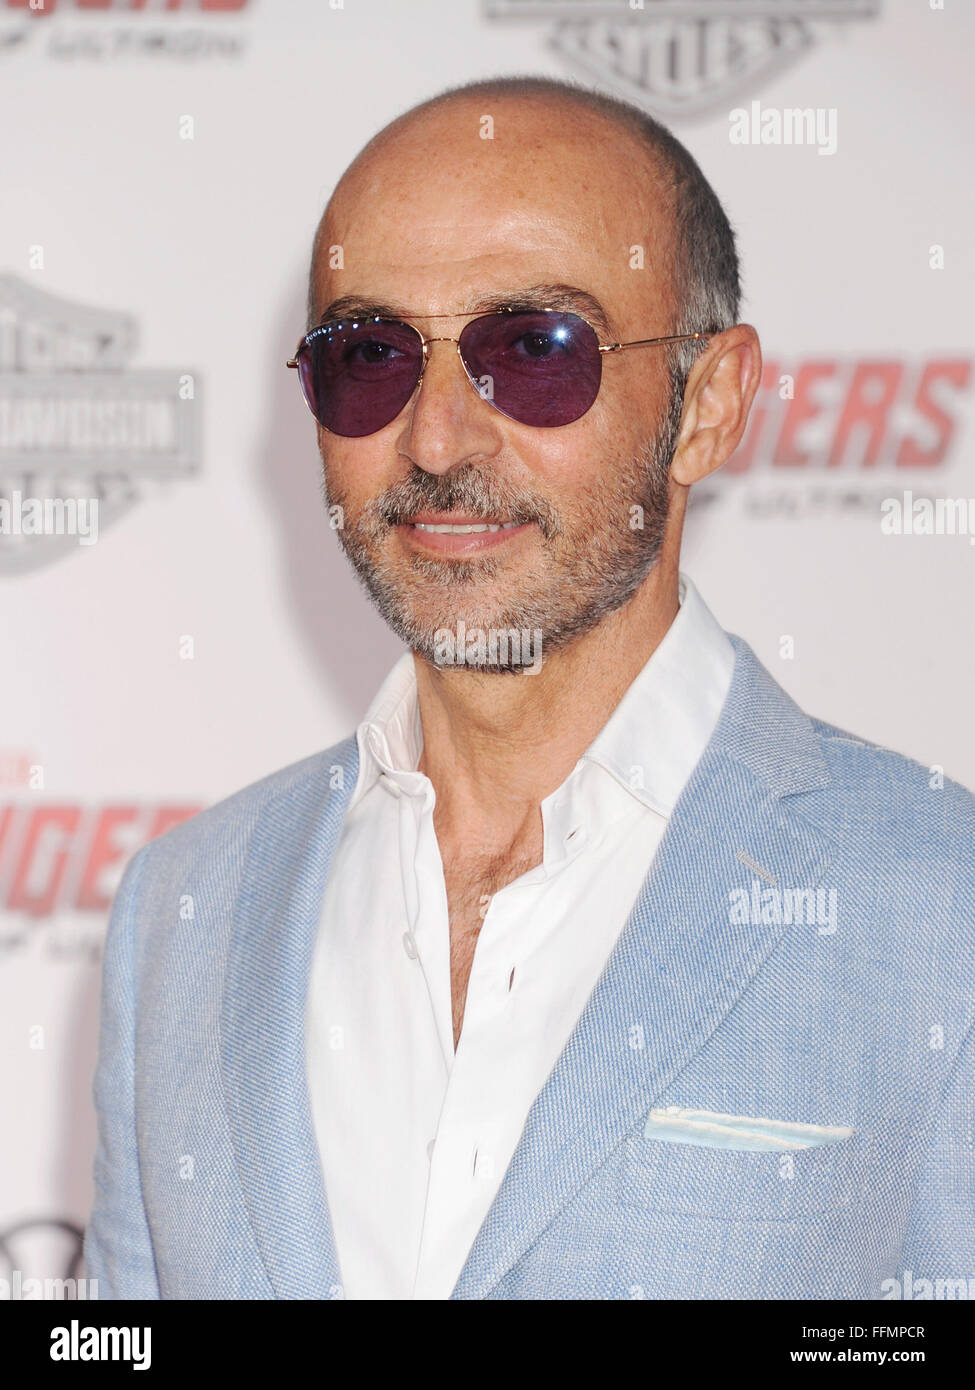 "Actor Shaun Toub arrives at the Marvel's ""Avengers: Age Of Ultron"" - Los Angeles Premiere at Dolby Theatre on April Stock Photo"